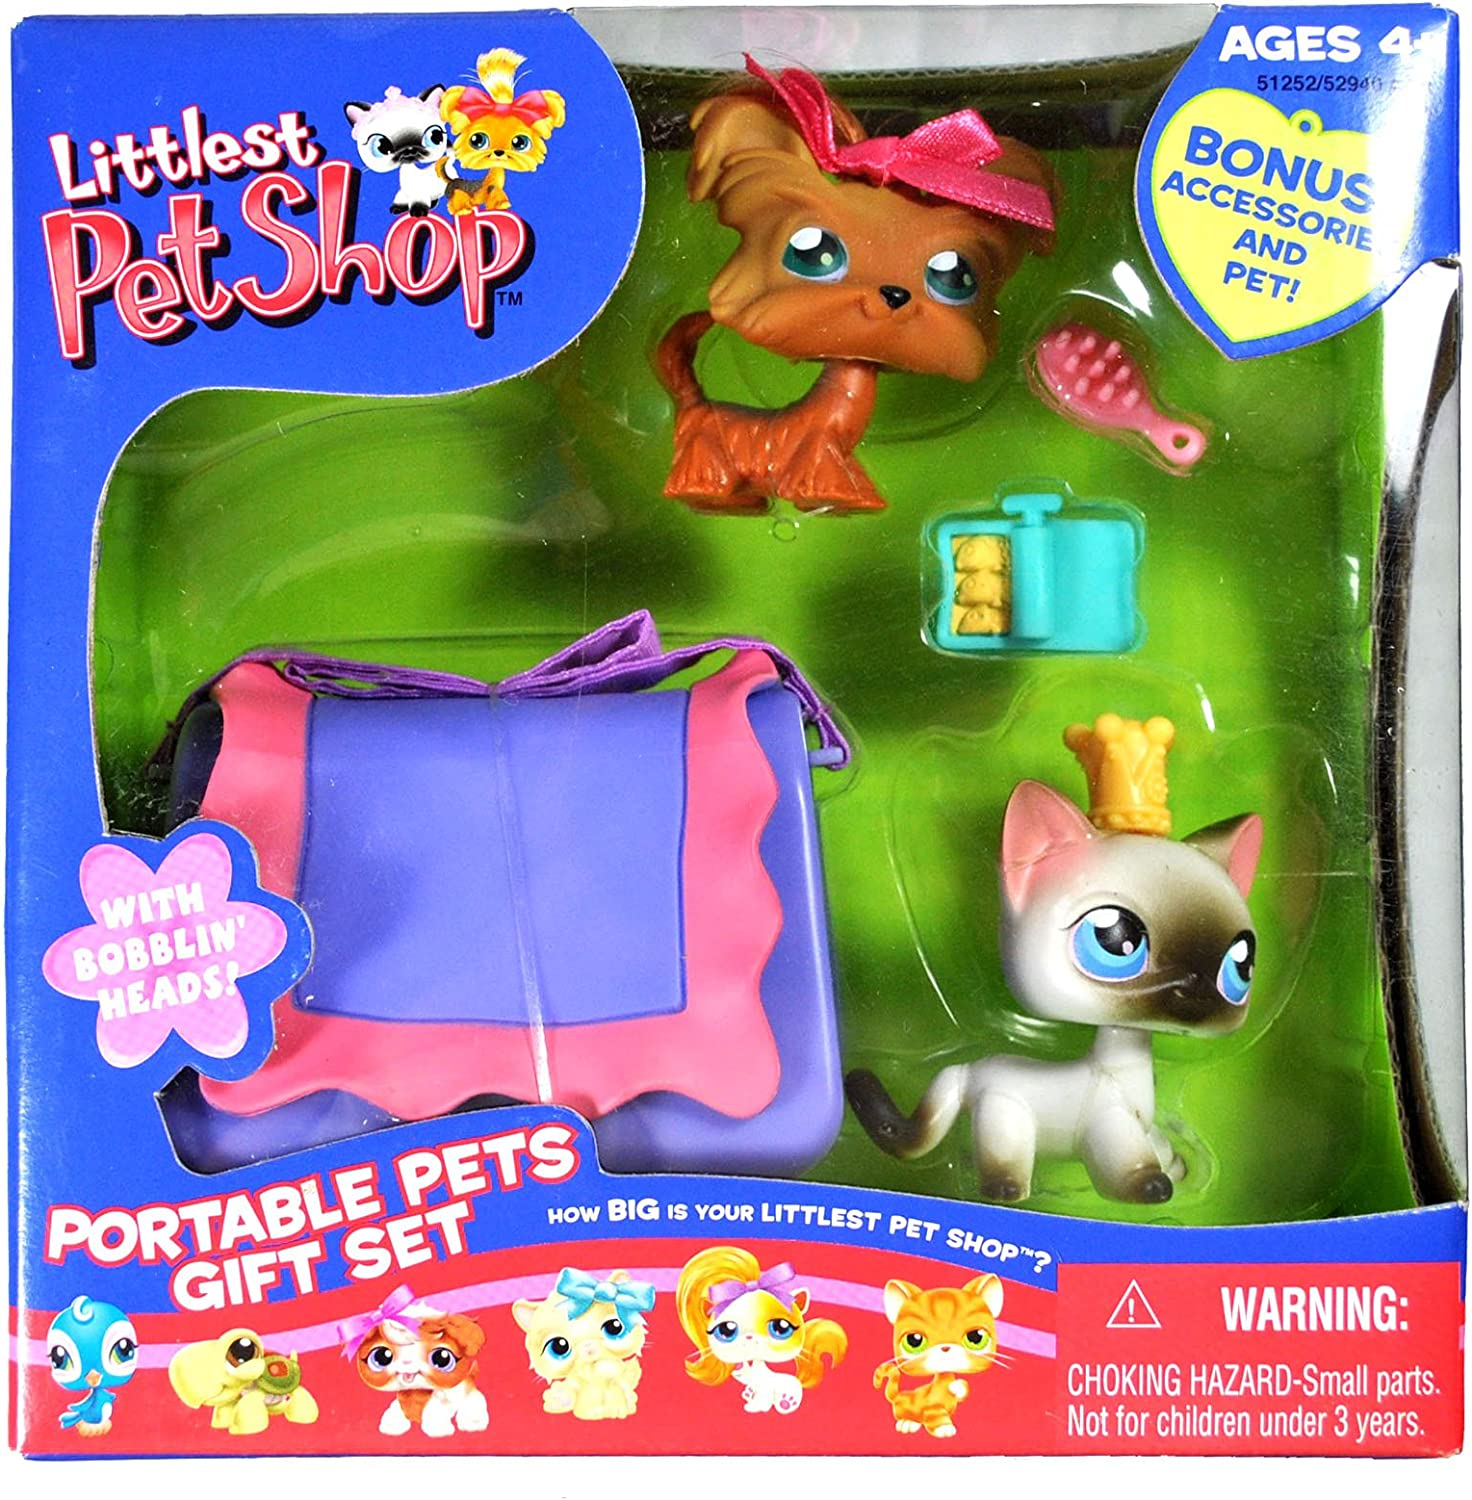 Hasbro Year 2006 Littlest Pet Shop Exclusive Portable Pets Bobble Head Figure Box Gift Set  Yorkshire Terrier Puppy Dog (Yorkie) with Pink Bow and Siamese Kitty Cat with Crown Plus Hairbrush, Can of Sardines and Cozy Carrier (51252)